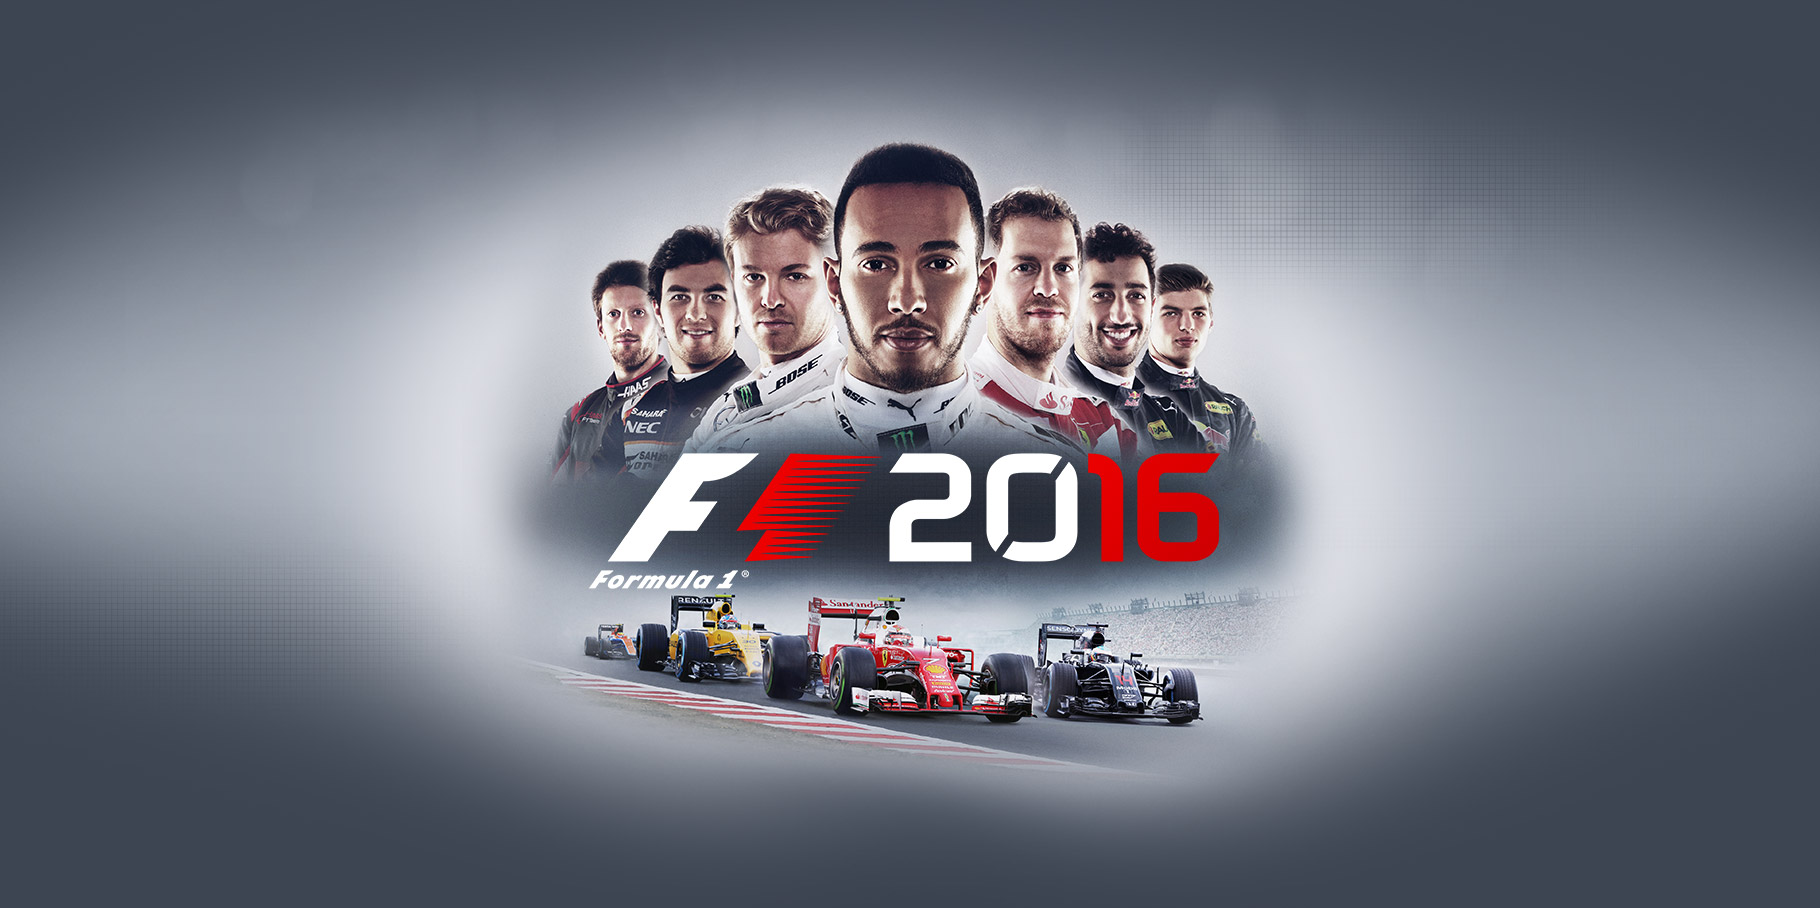 Artwork for F1 2016